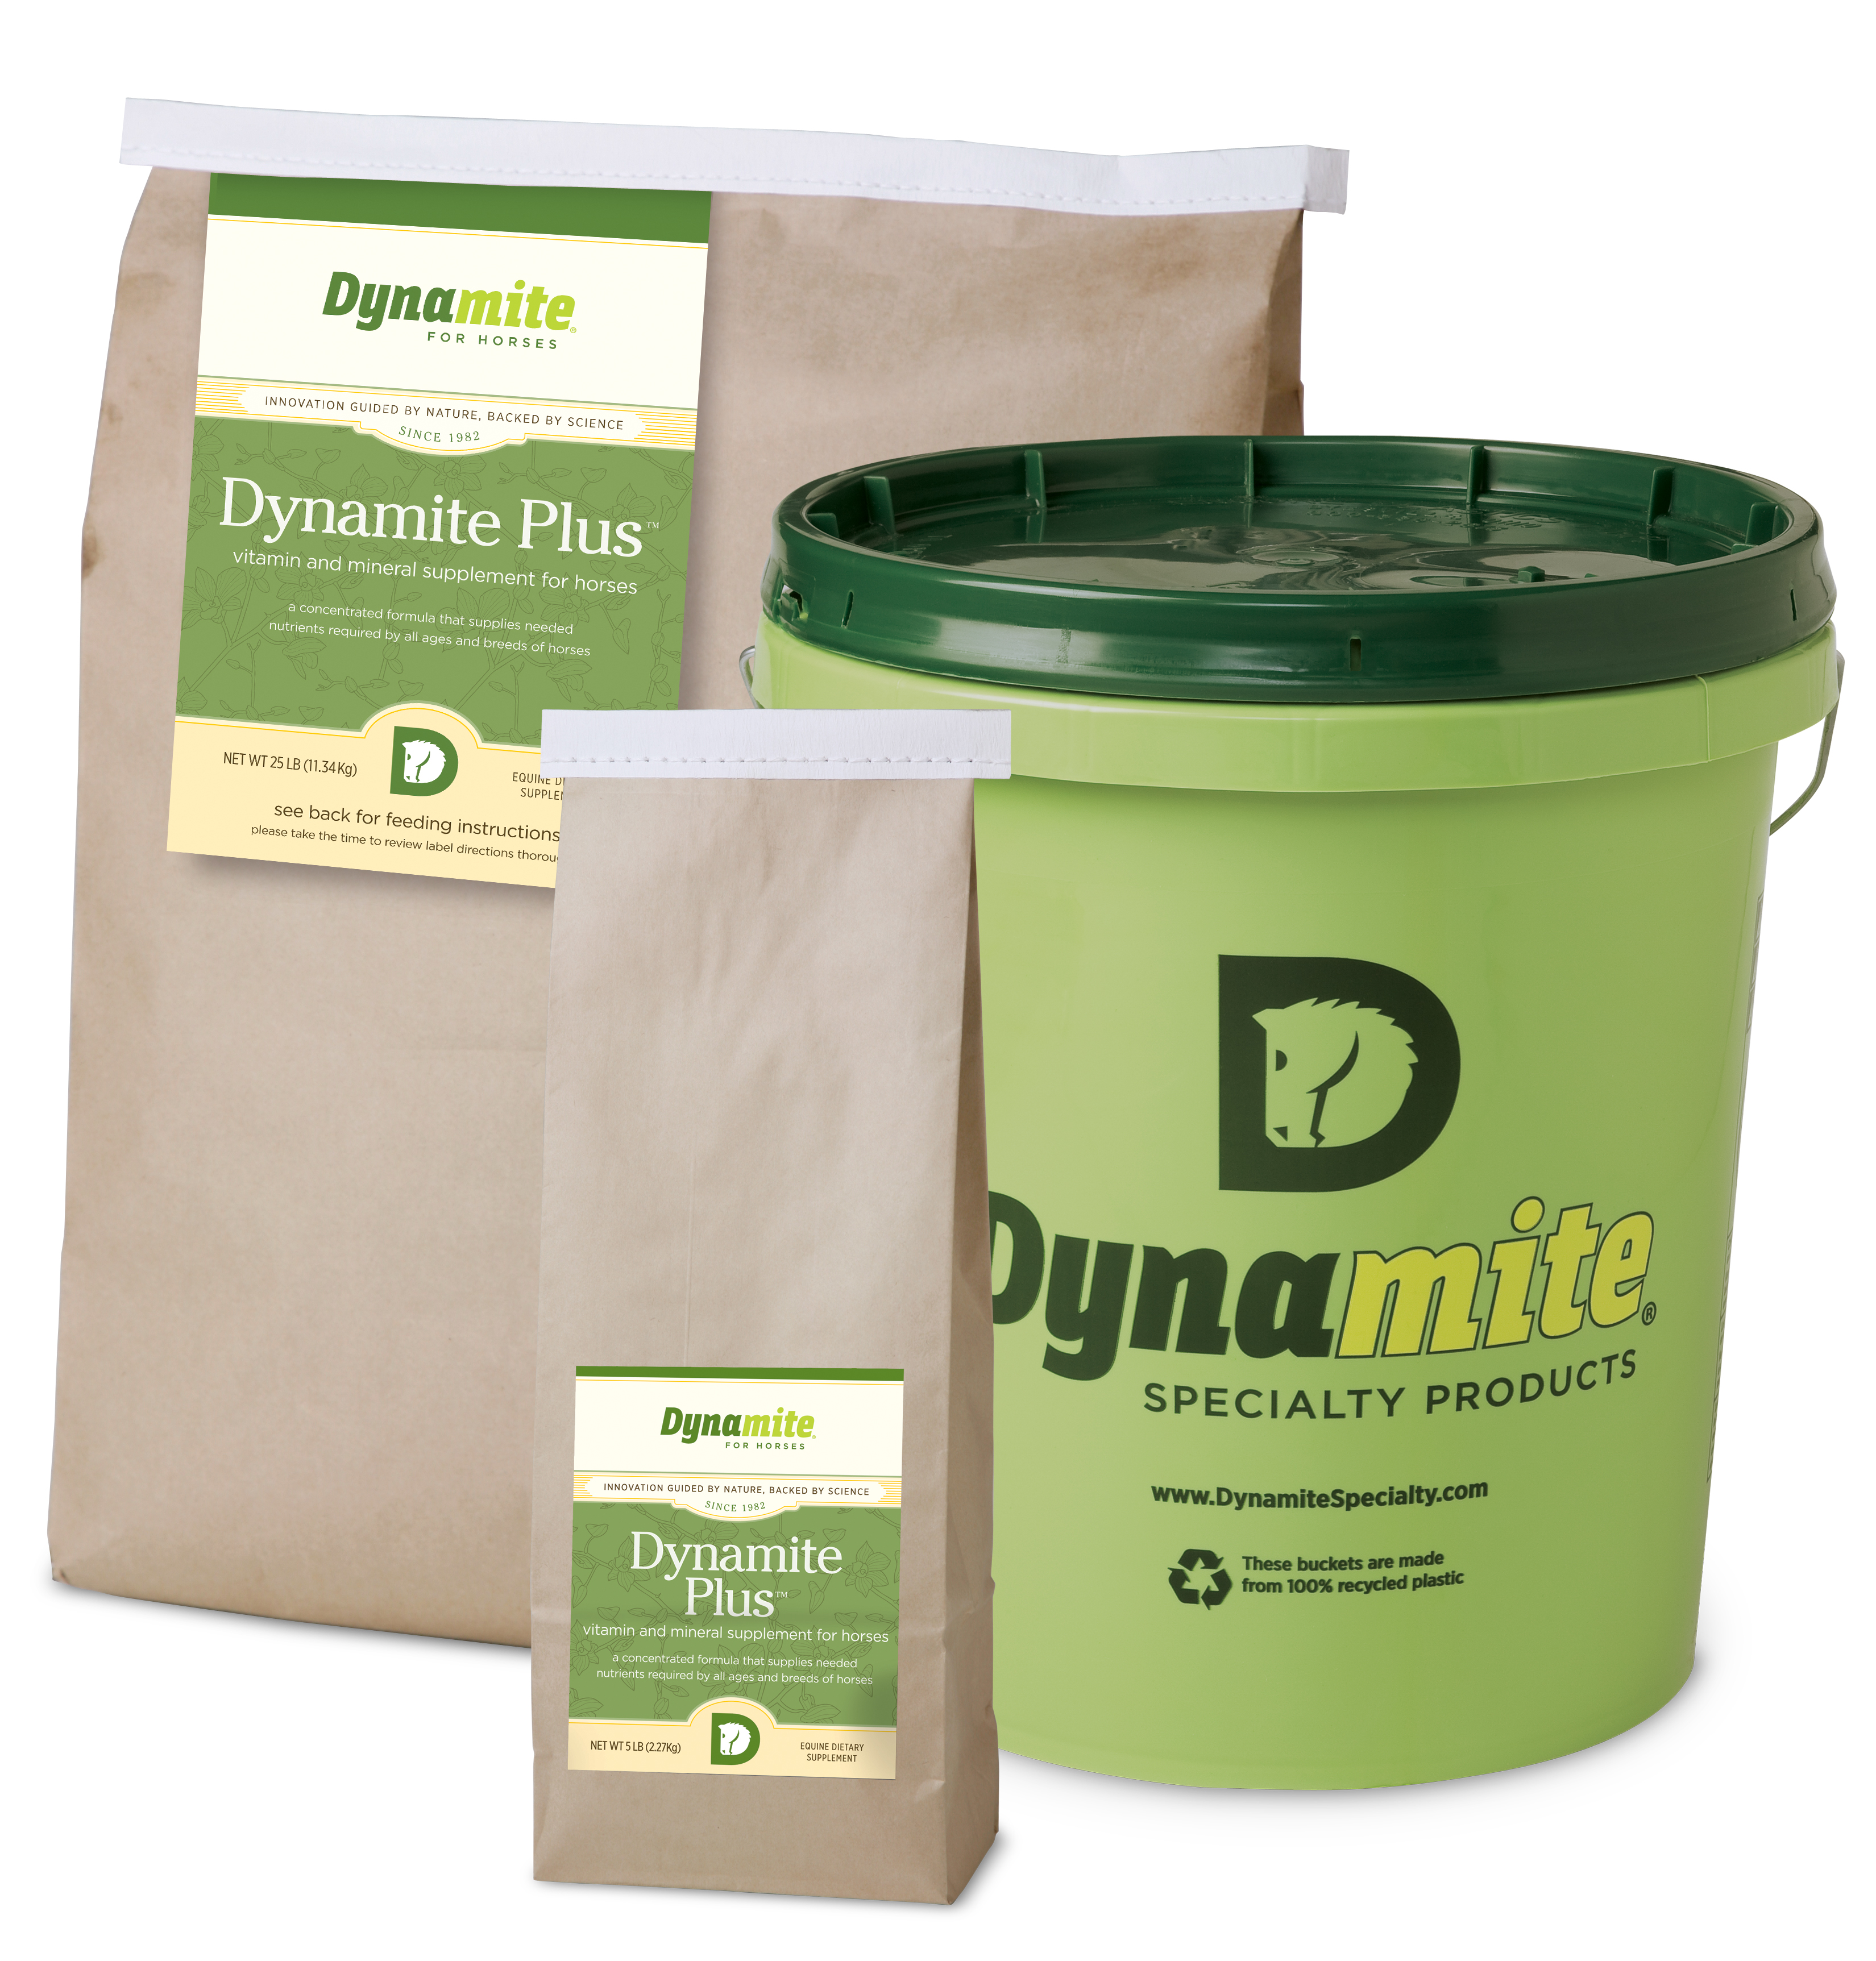 Dynamite Helps Suspensory Ligament